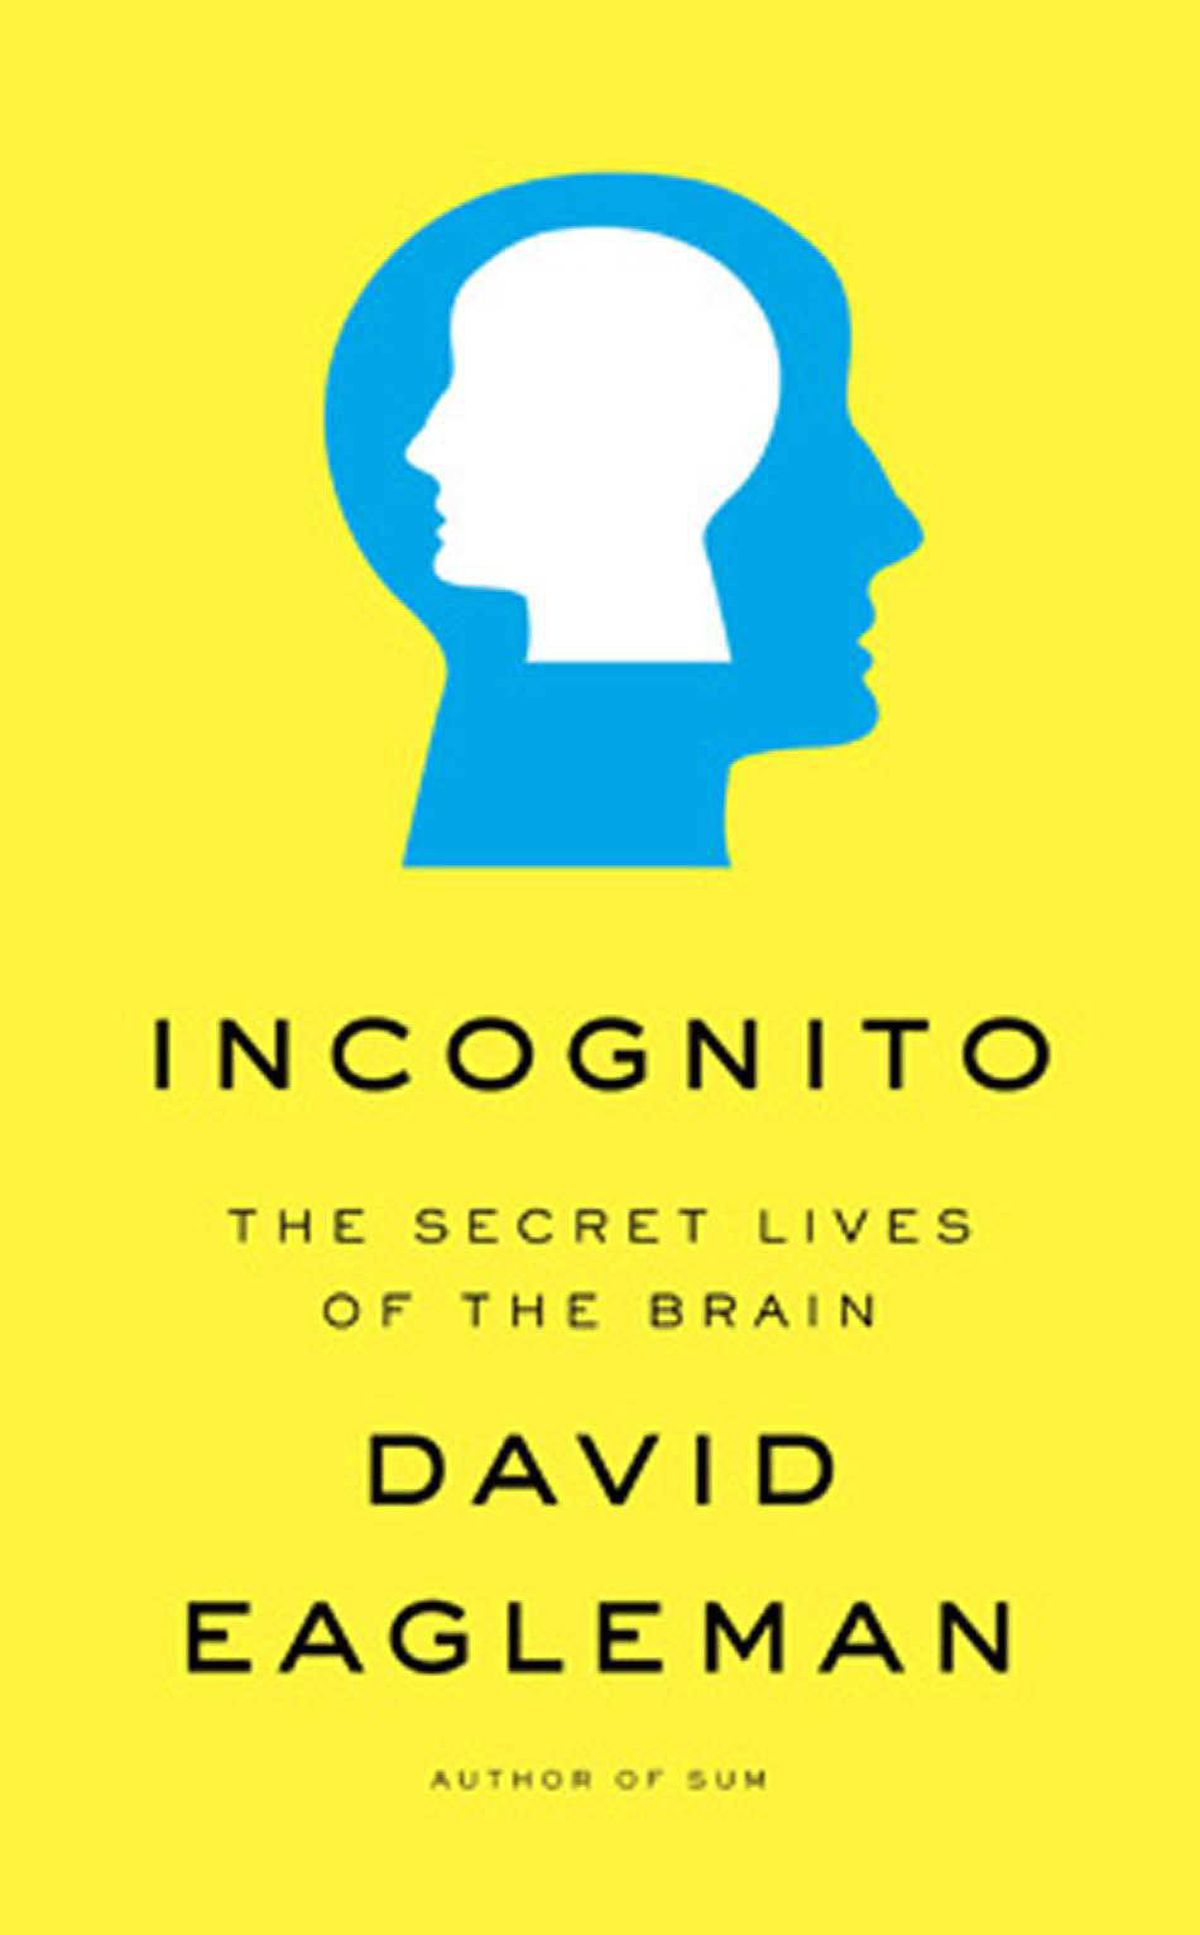 """INCOGNITO The Secret Lives of the Brain By David Eagleman (Viking Canada) I love this book, though it is the sort experts on human nature hate, as Eagleman says things like """"criminals should always be treated as incapable of having acted otherwise."""" I love it precisely because it reveals so many of the strings and levers of human nature; science has revealed us as bio-robots. Not divine, but engineered by evolution. – Jeffrey Foss"""